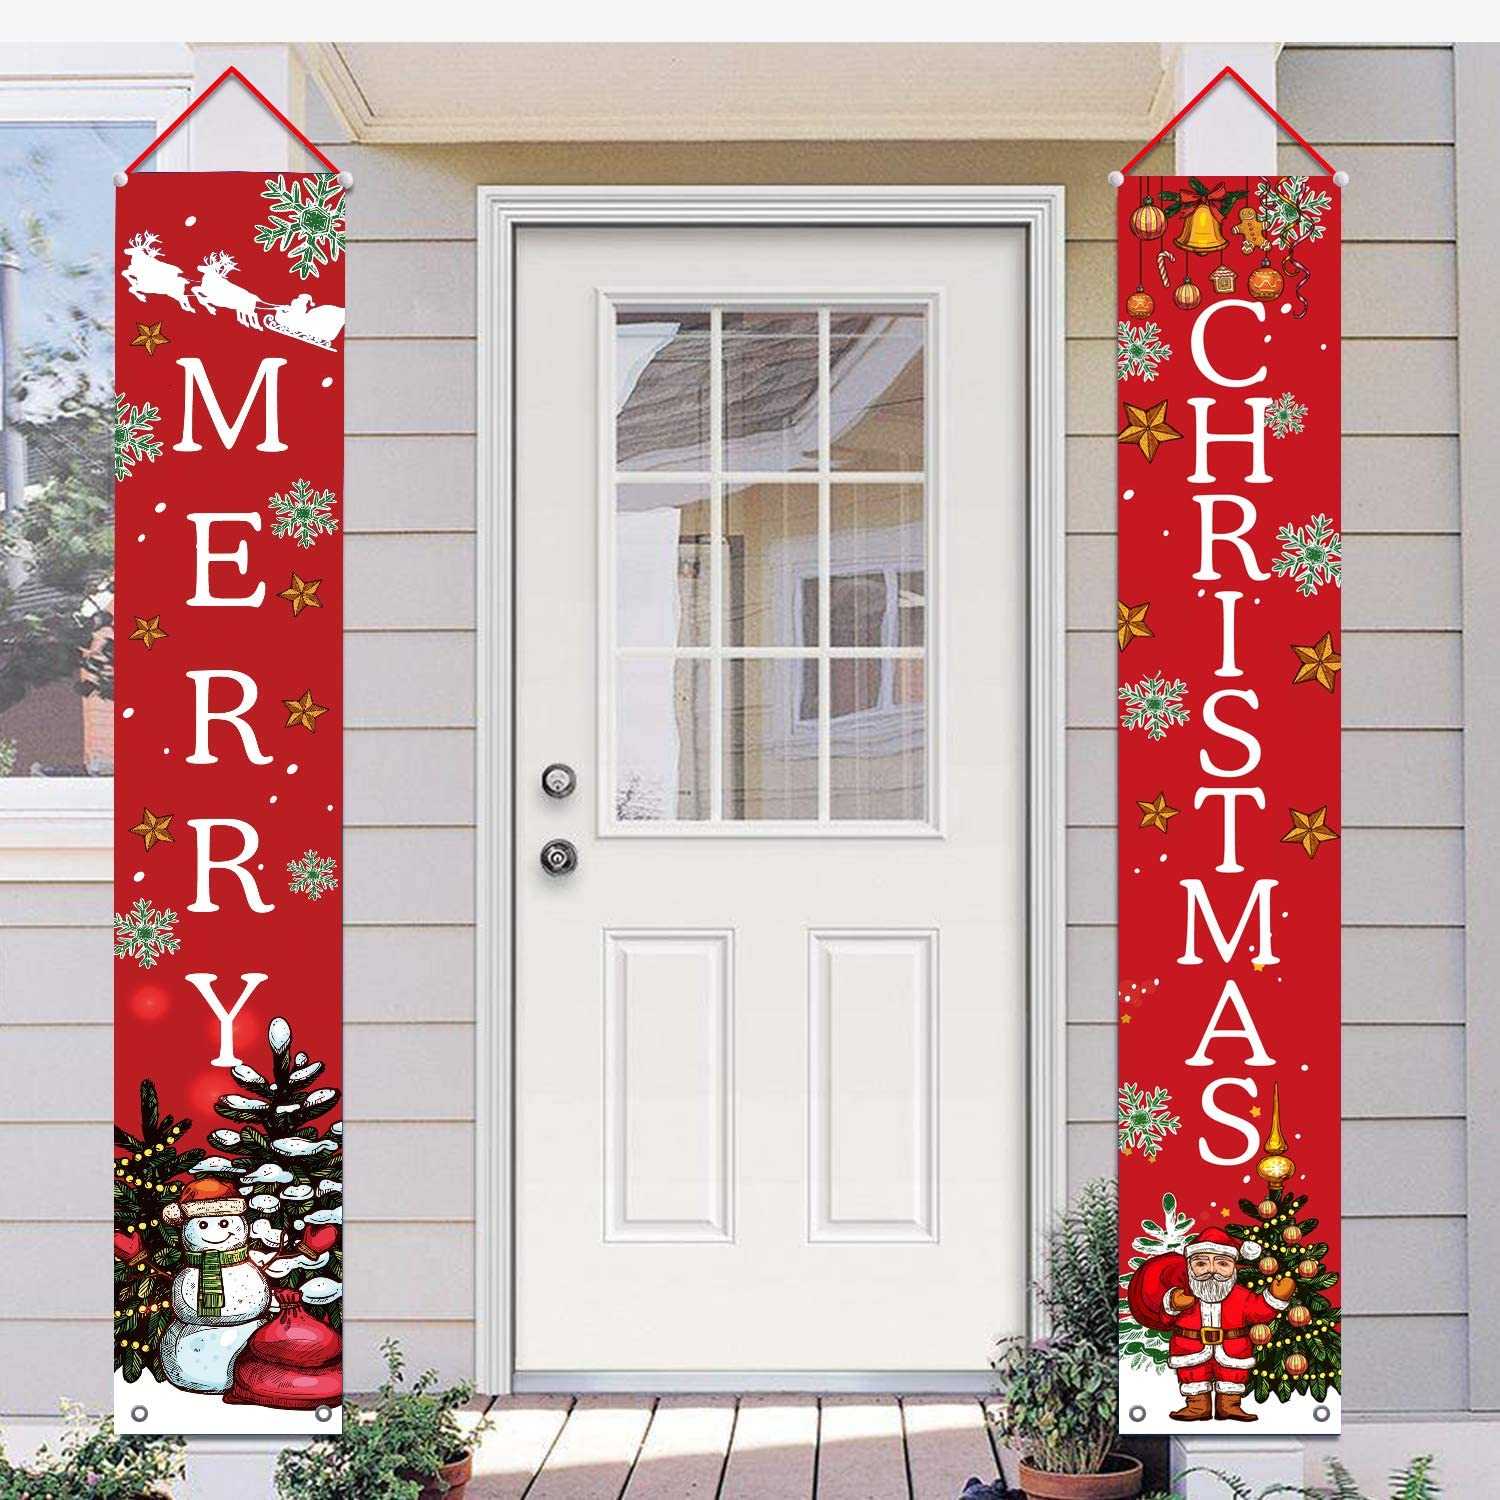 Shmbada Welcome Merry Christmas Party Decor Porch Sign Front Door Hanging Banners Flags, Twill Fabric Wall Decoration for Indoor Outdoor Home Yard Farmhouse, Set of 2